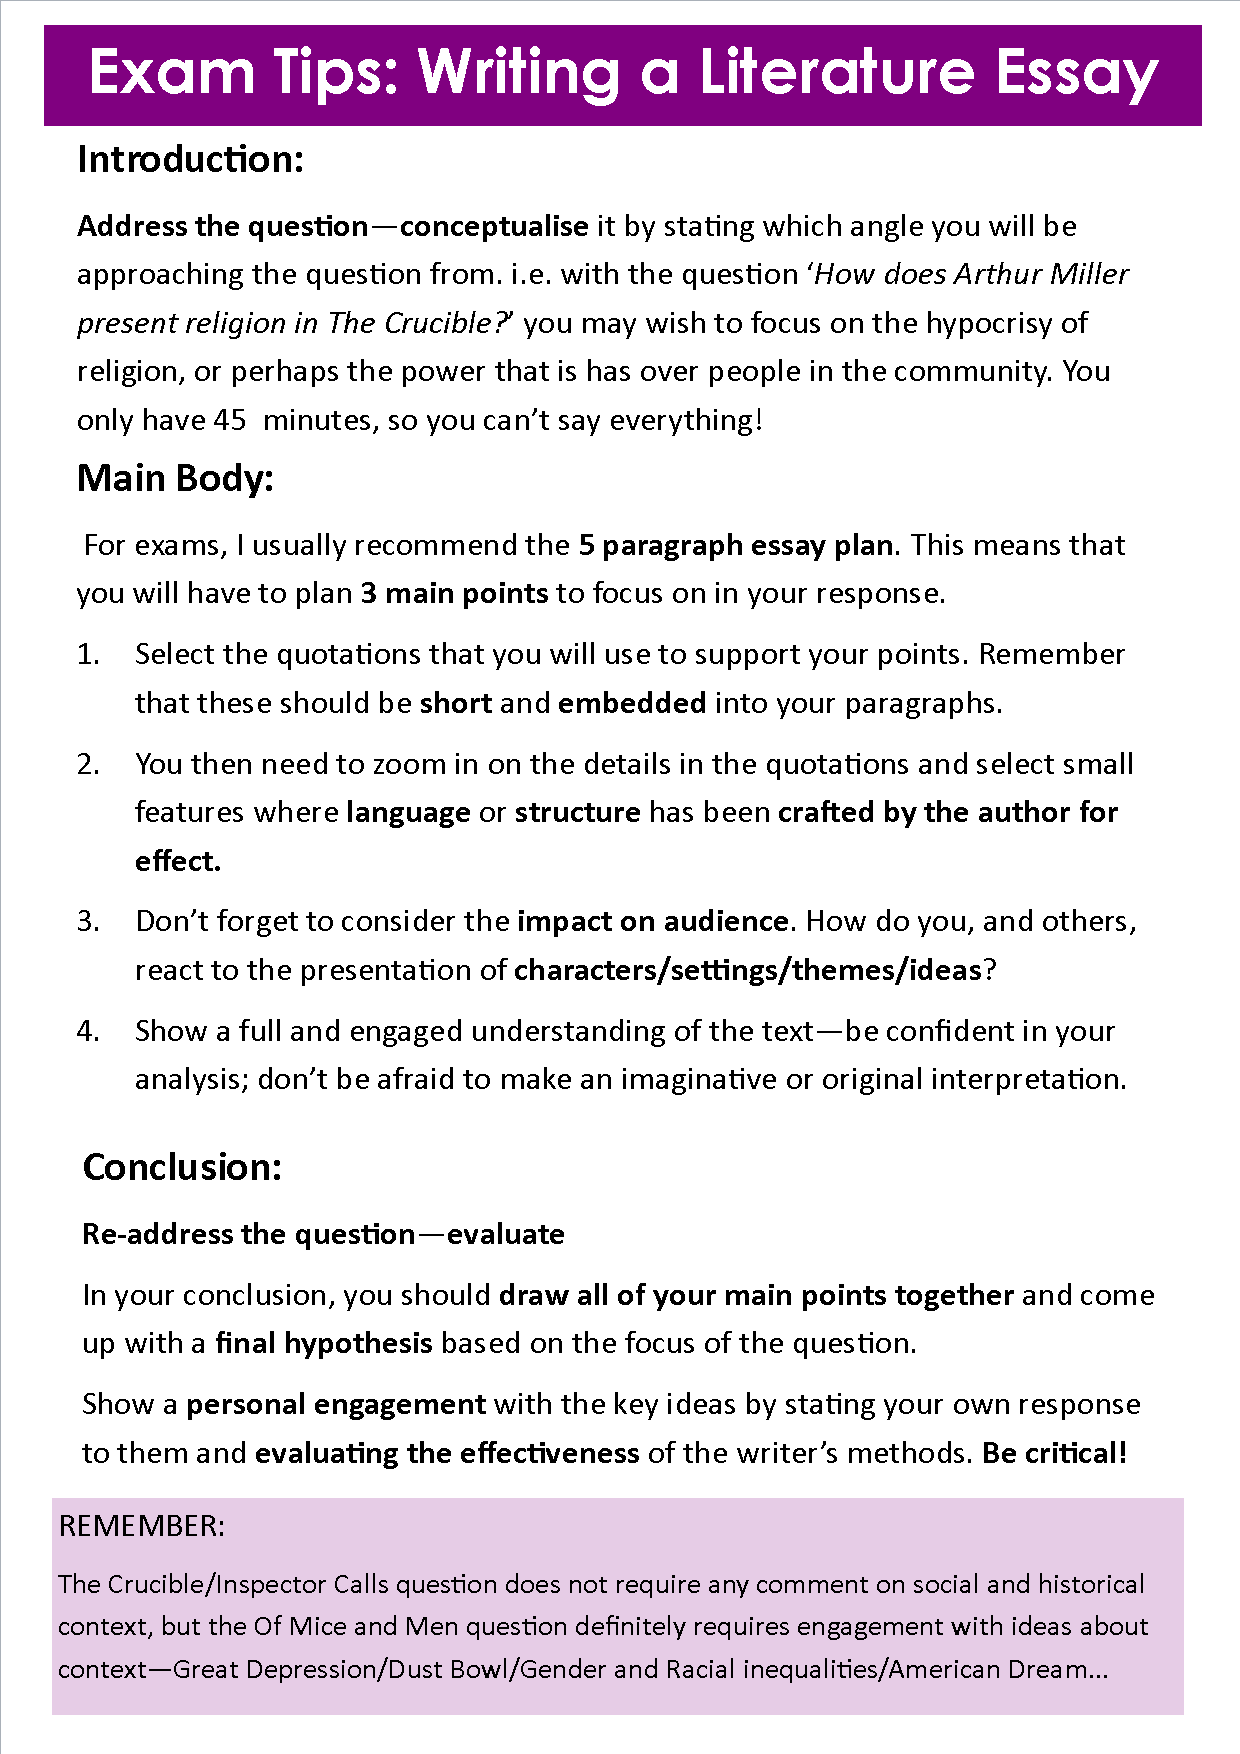 a crucible analysis in terms of language and structure essay The author writes a hook 22 = 73 the paper is somewhat and organized throughout the essay language and structure but there to the crucible essay.